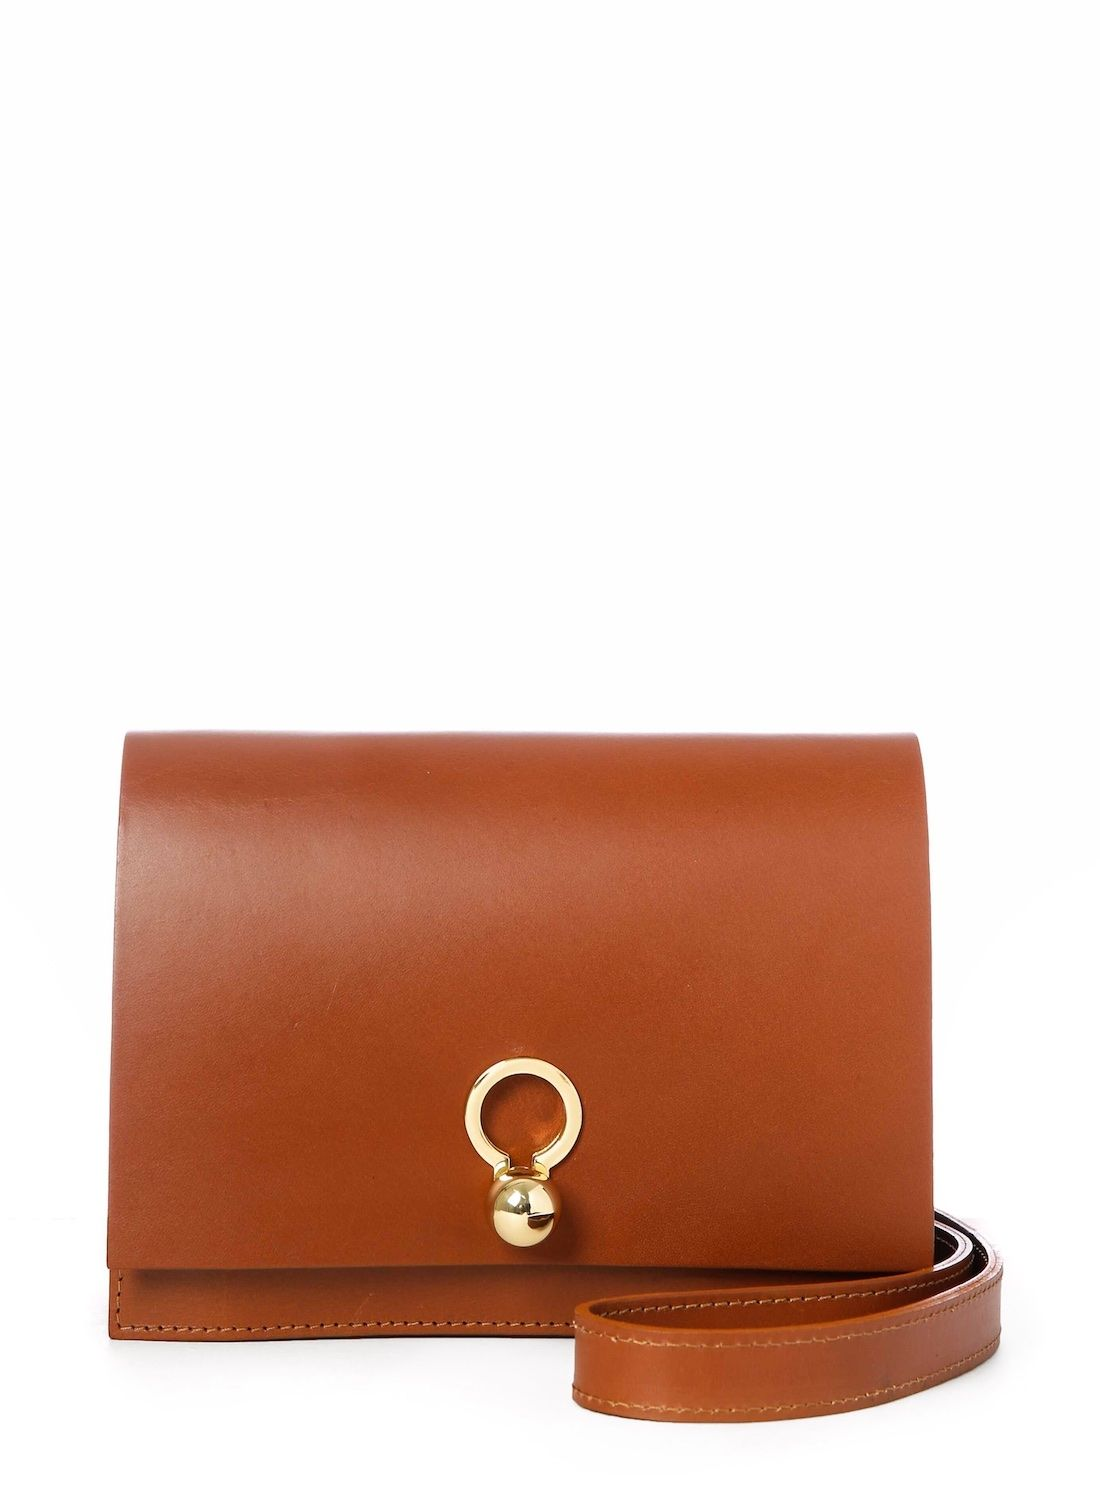 7f7659a76 CHARLIE Box in Tan Leather by Danielle Foster / Bags / Shoulder | Young  British Designers